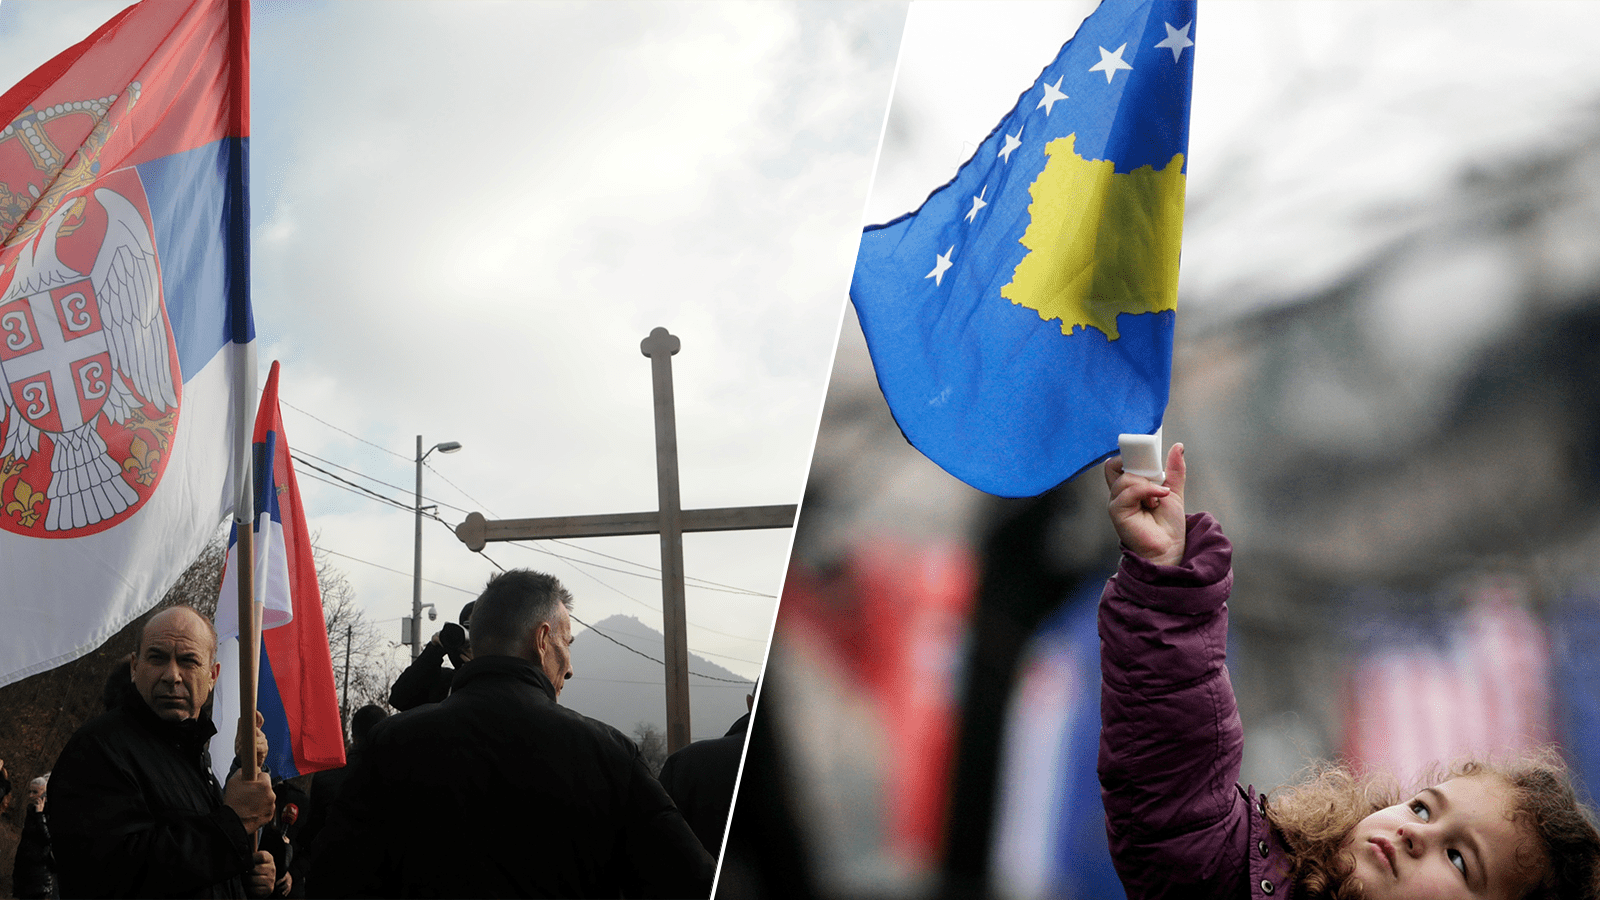 Left: People protest after Kosovo's decision to raise customs tariffs on Serbian and Bosnian goods, in the village of Rudare near Mitrovica, Kosovo, November 23, 2018. Credit: REUTERS/Laura Hasani Right: An ethnic Albanian girl holds the Kosovo flag during celebrations for the second anniversary of Kosovo's declaration of independence from Serbia, in Pristina February 17, 2010. Credit: REUTERS/Hazir Reka